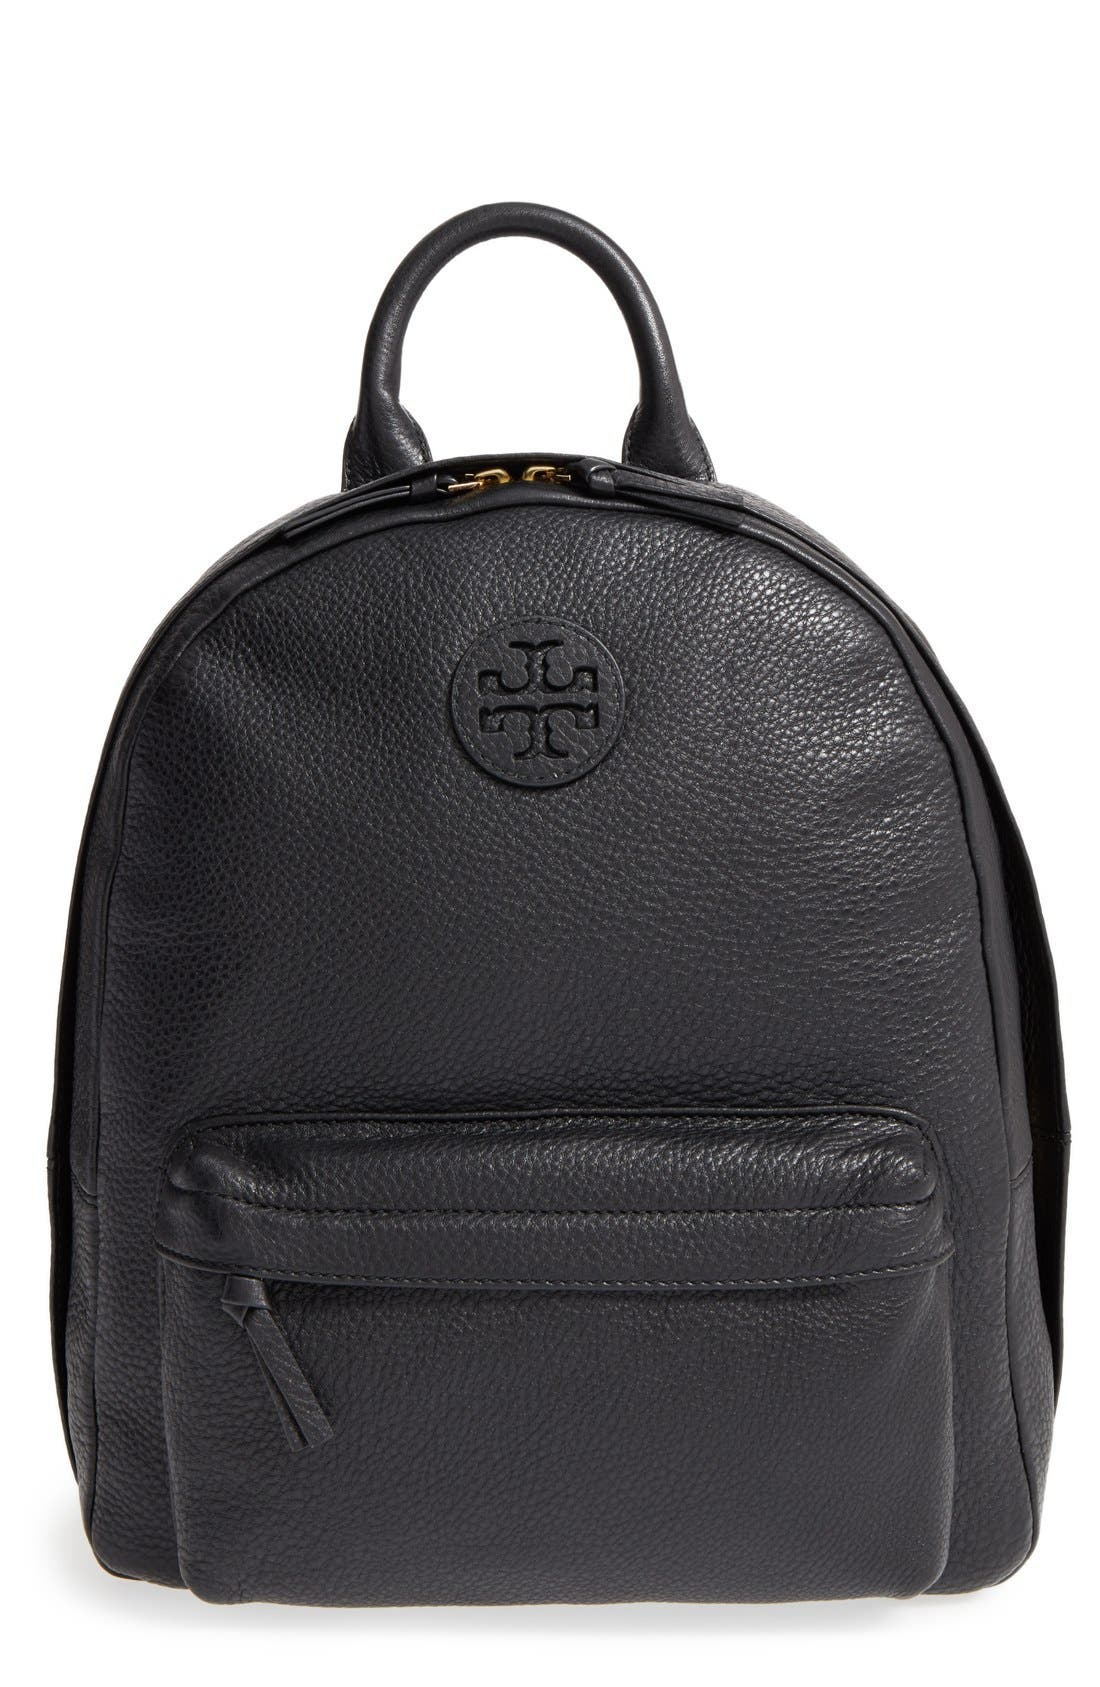 Main Image - Tory Burch Pebbled Leather Backpack